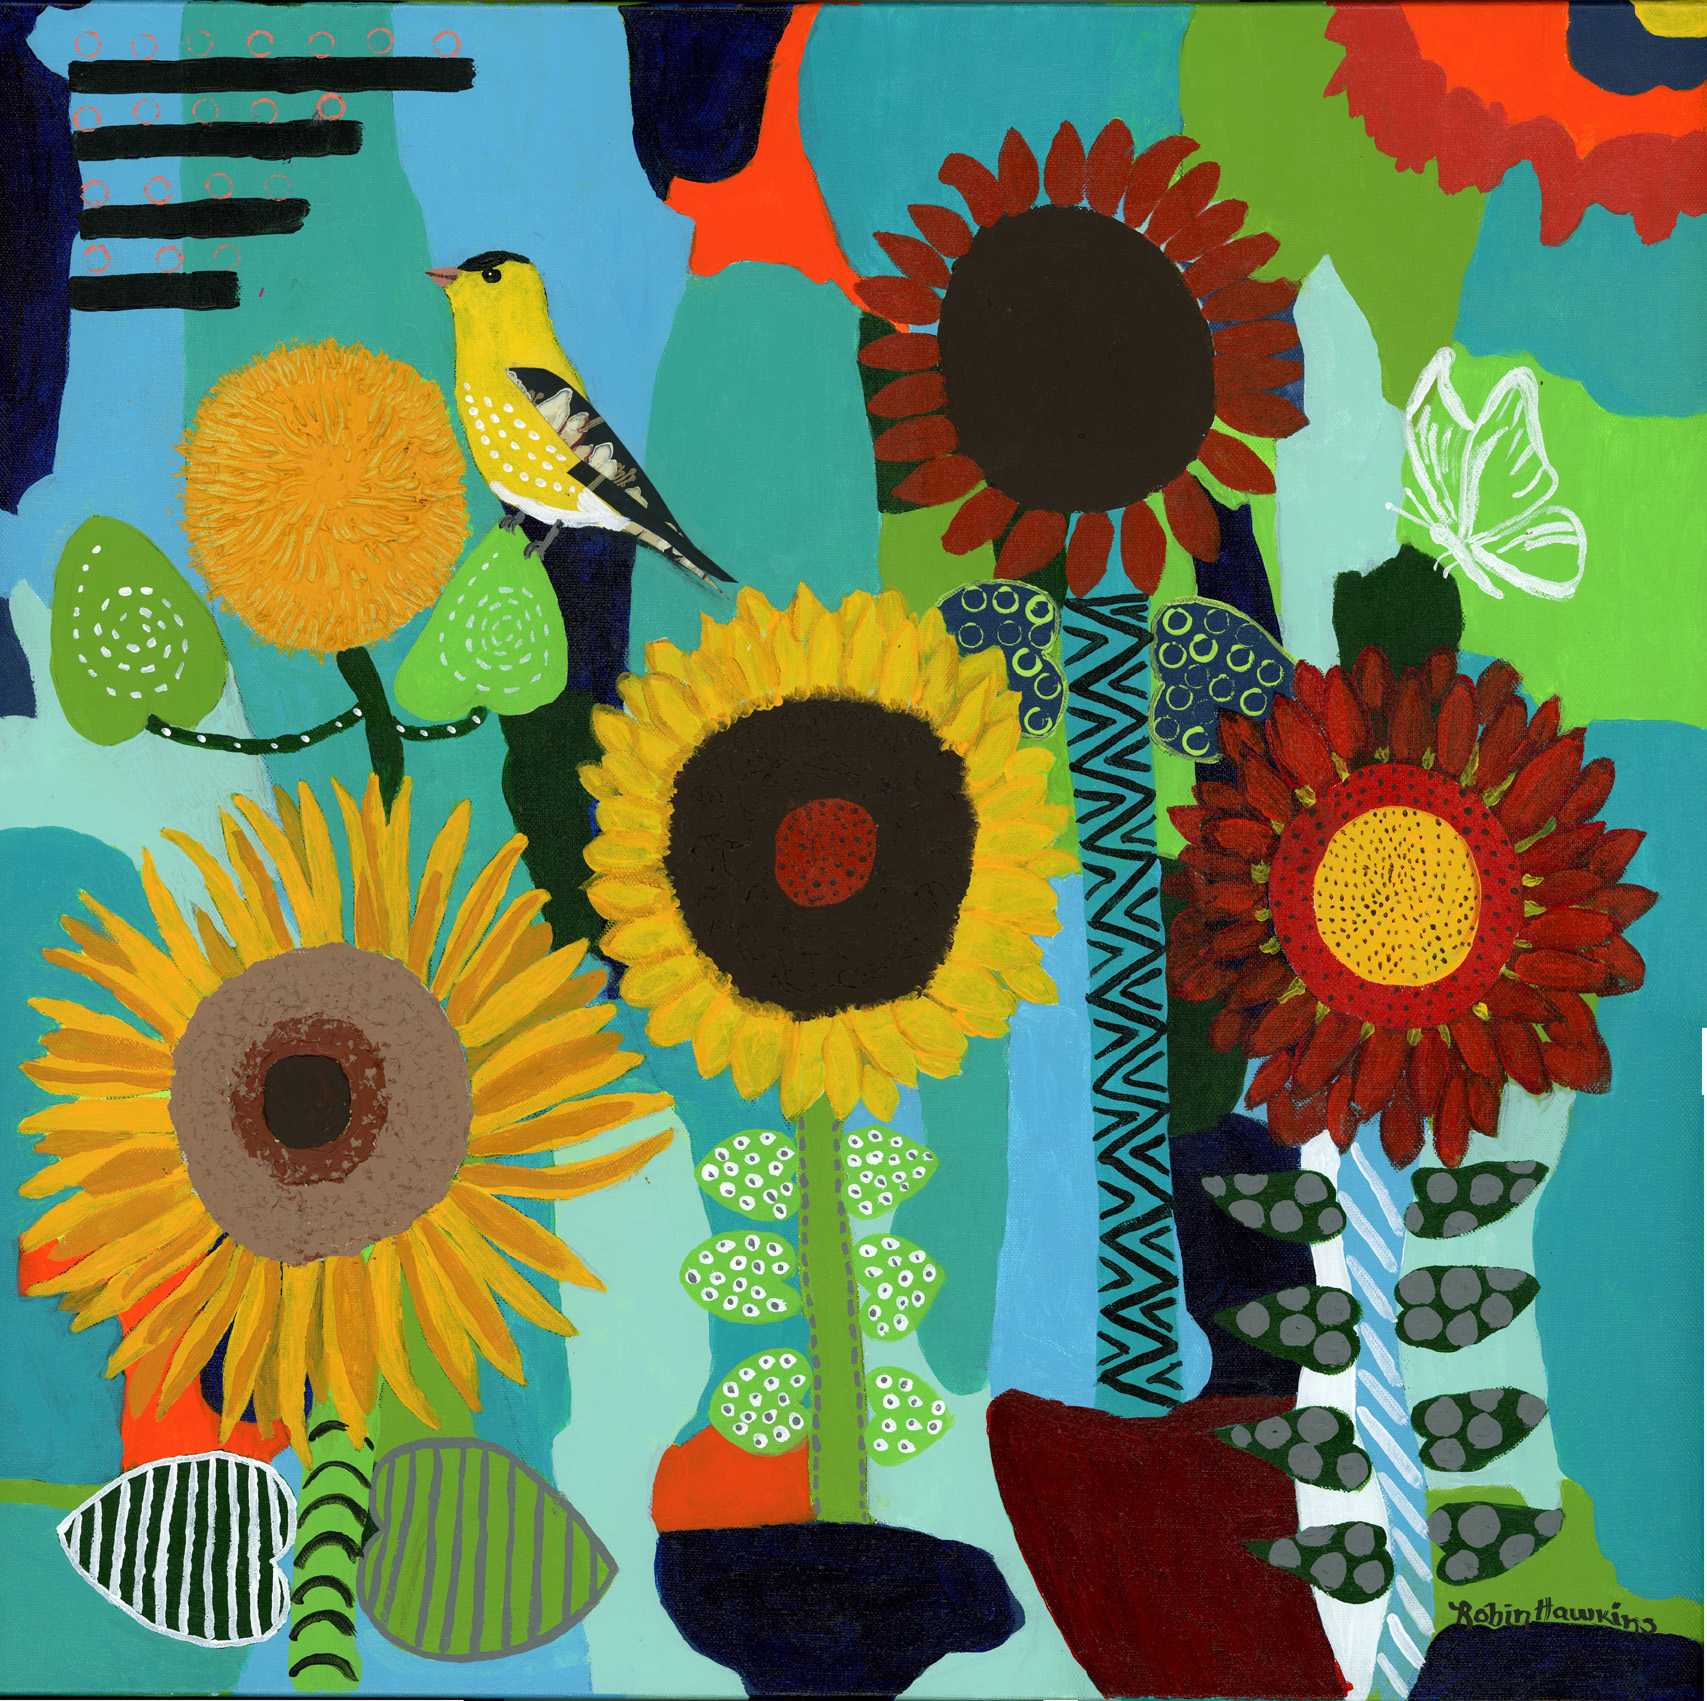 Five different sunflowers with geometric qualities.  The backgrounds are various shades of turquoise.  A goldfinch, white butterfly and a sun are also in the picture.